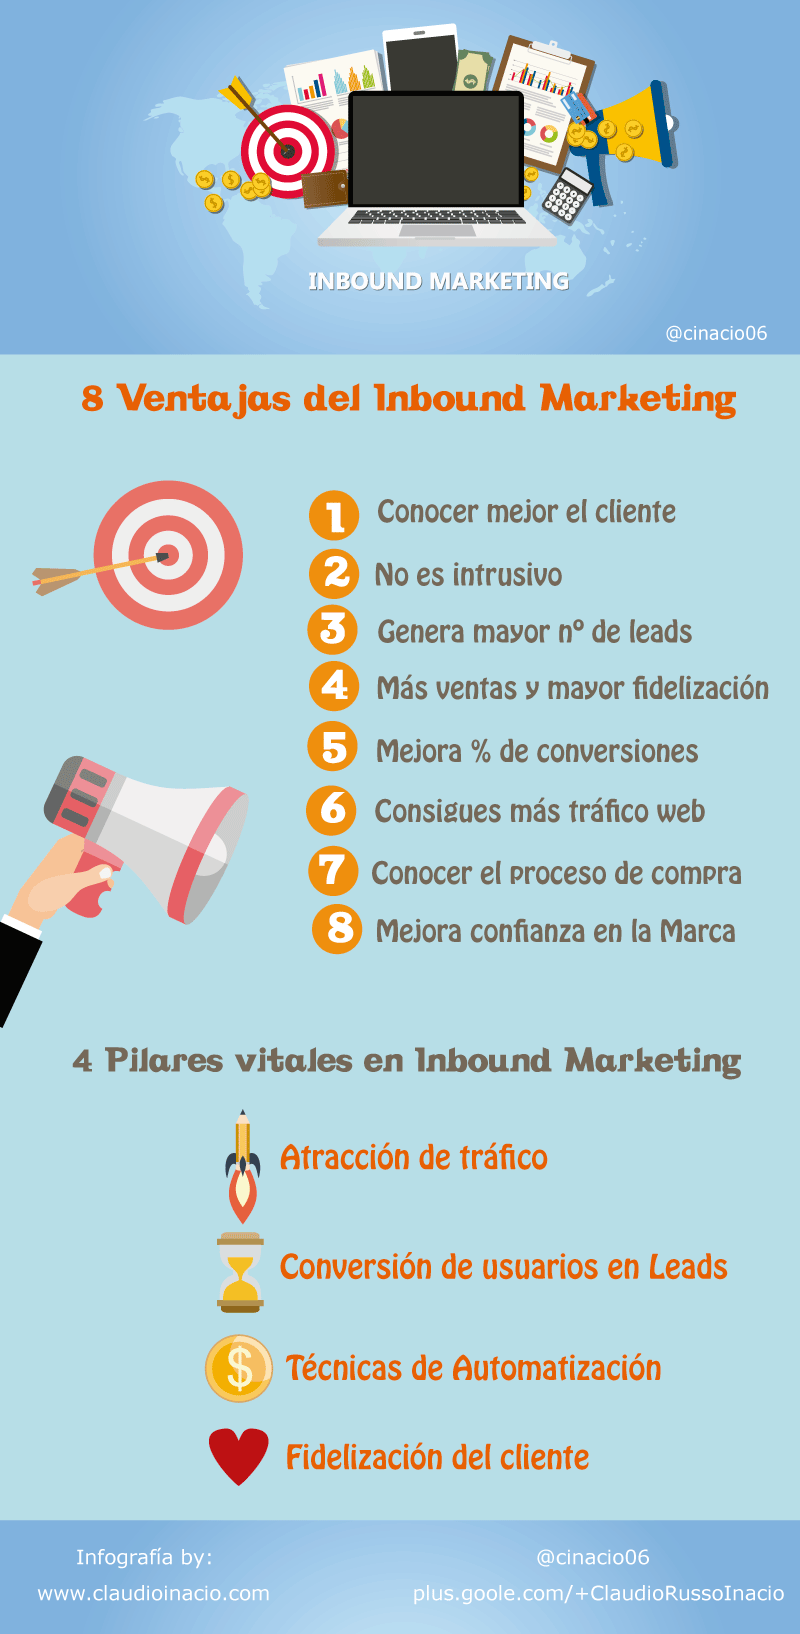 8 ventajas y 4 pilares del Inbound Marketing